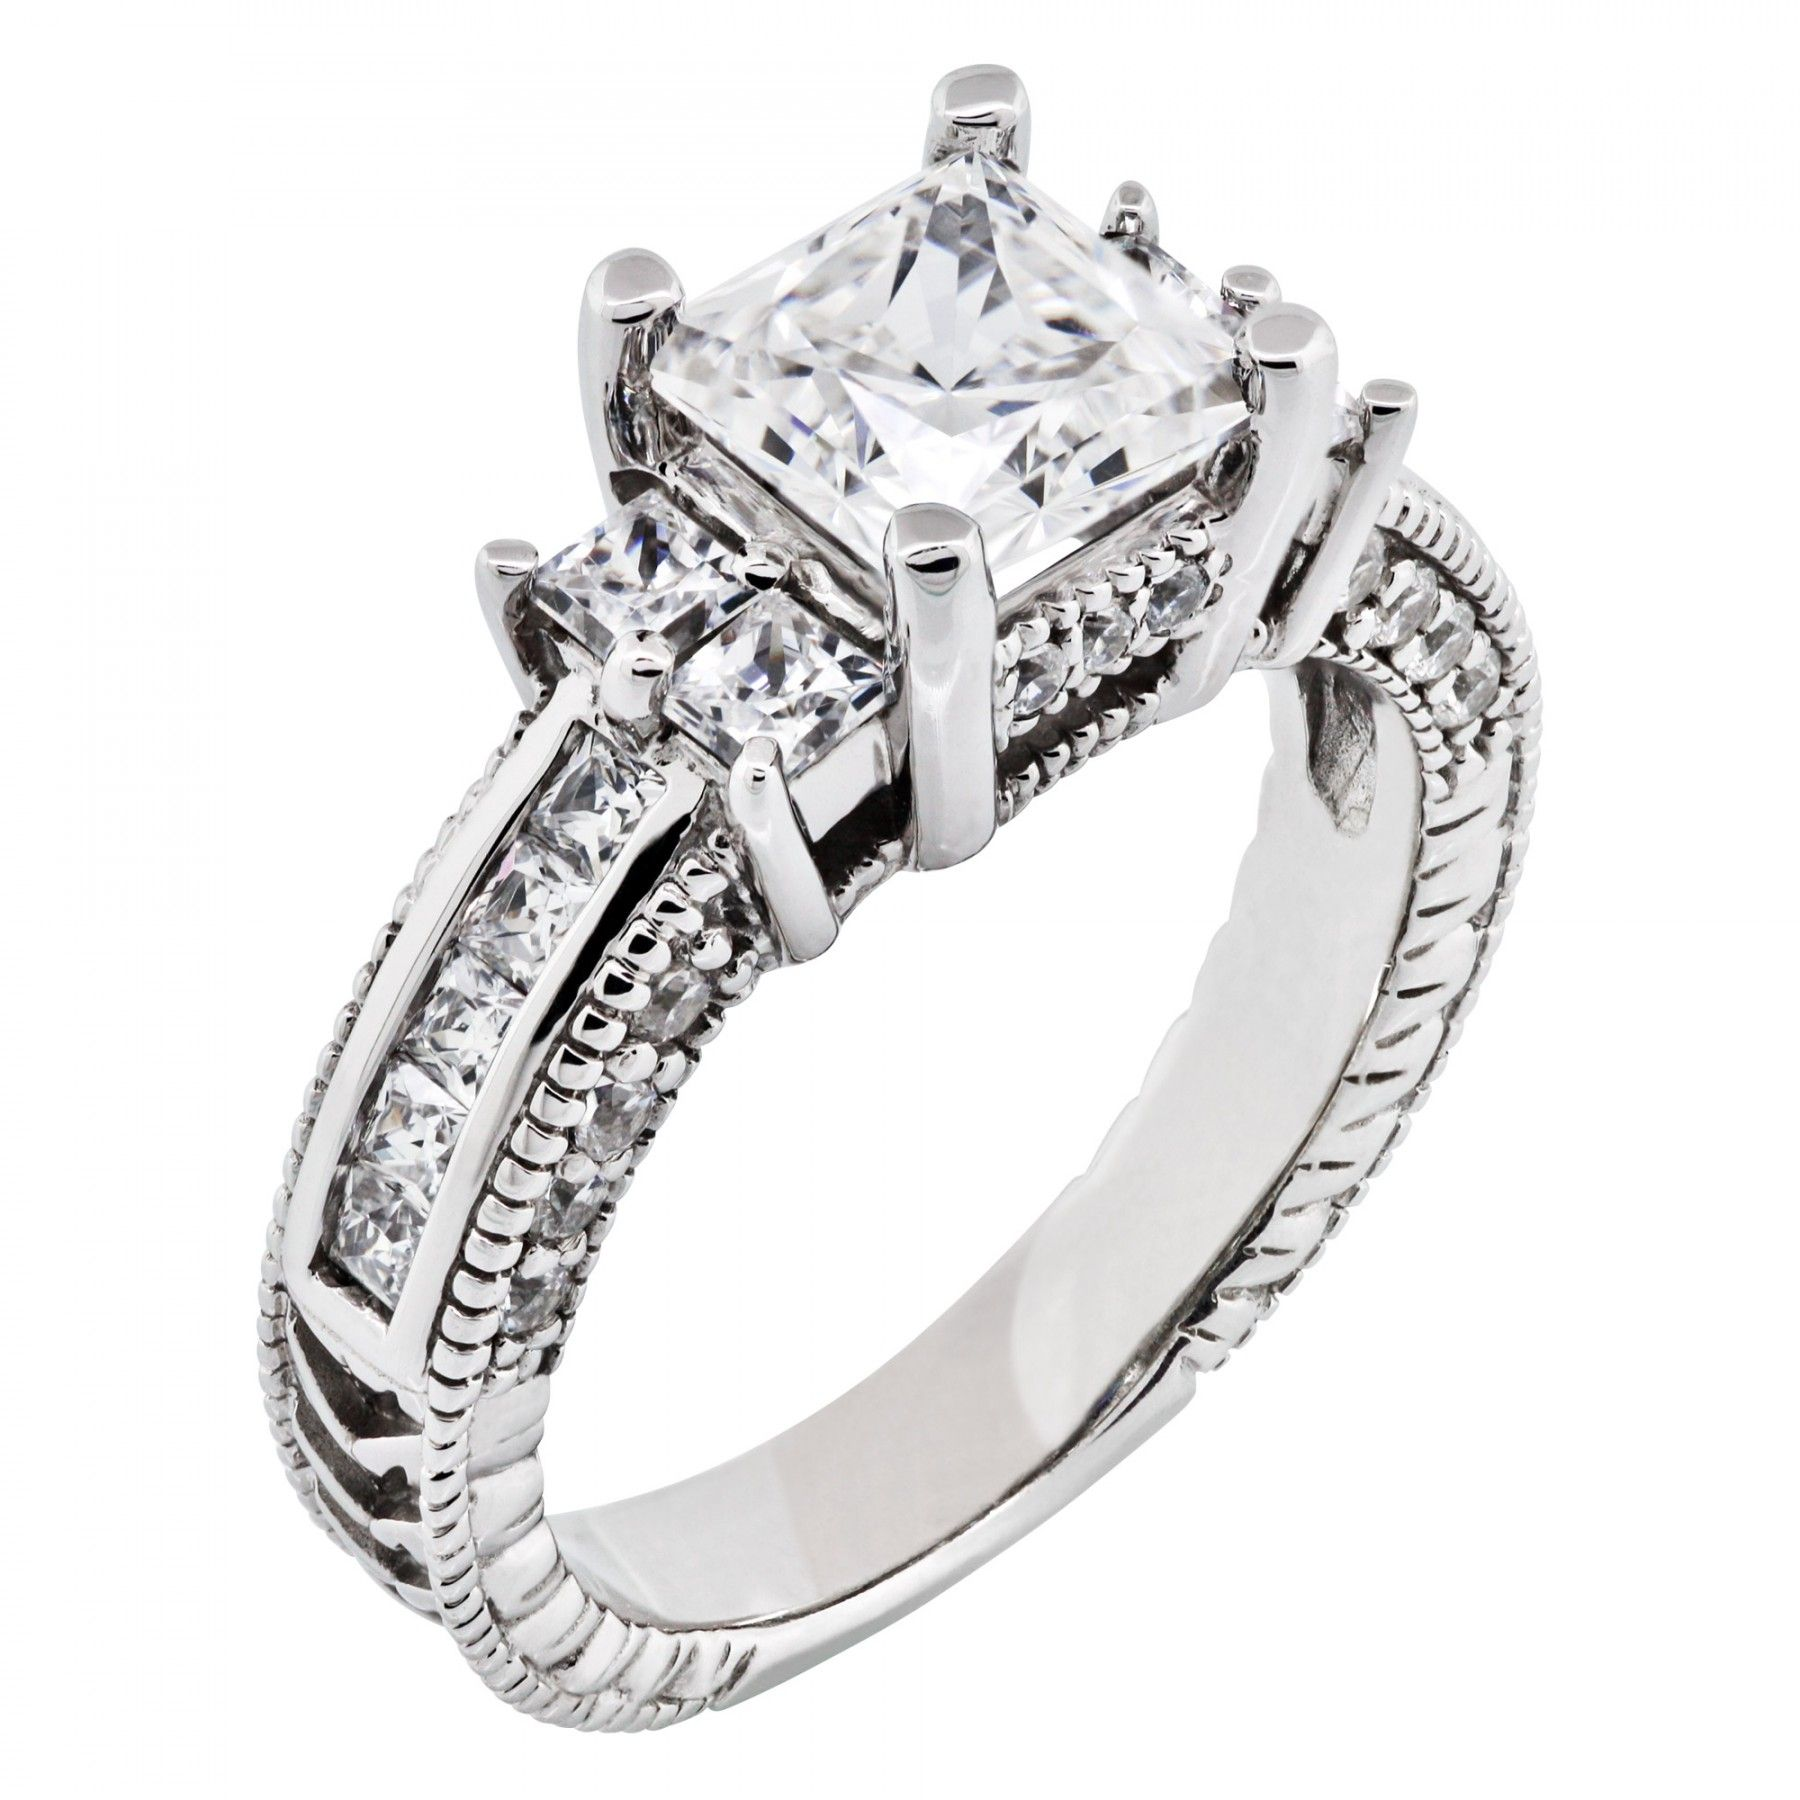 cost low this spectacularly and engagement profile s affordable rings pin artisan while ring sparkling glamorous